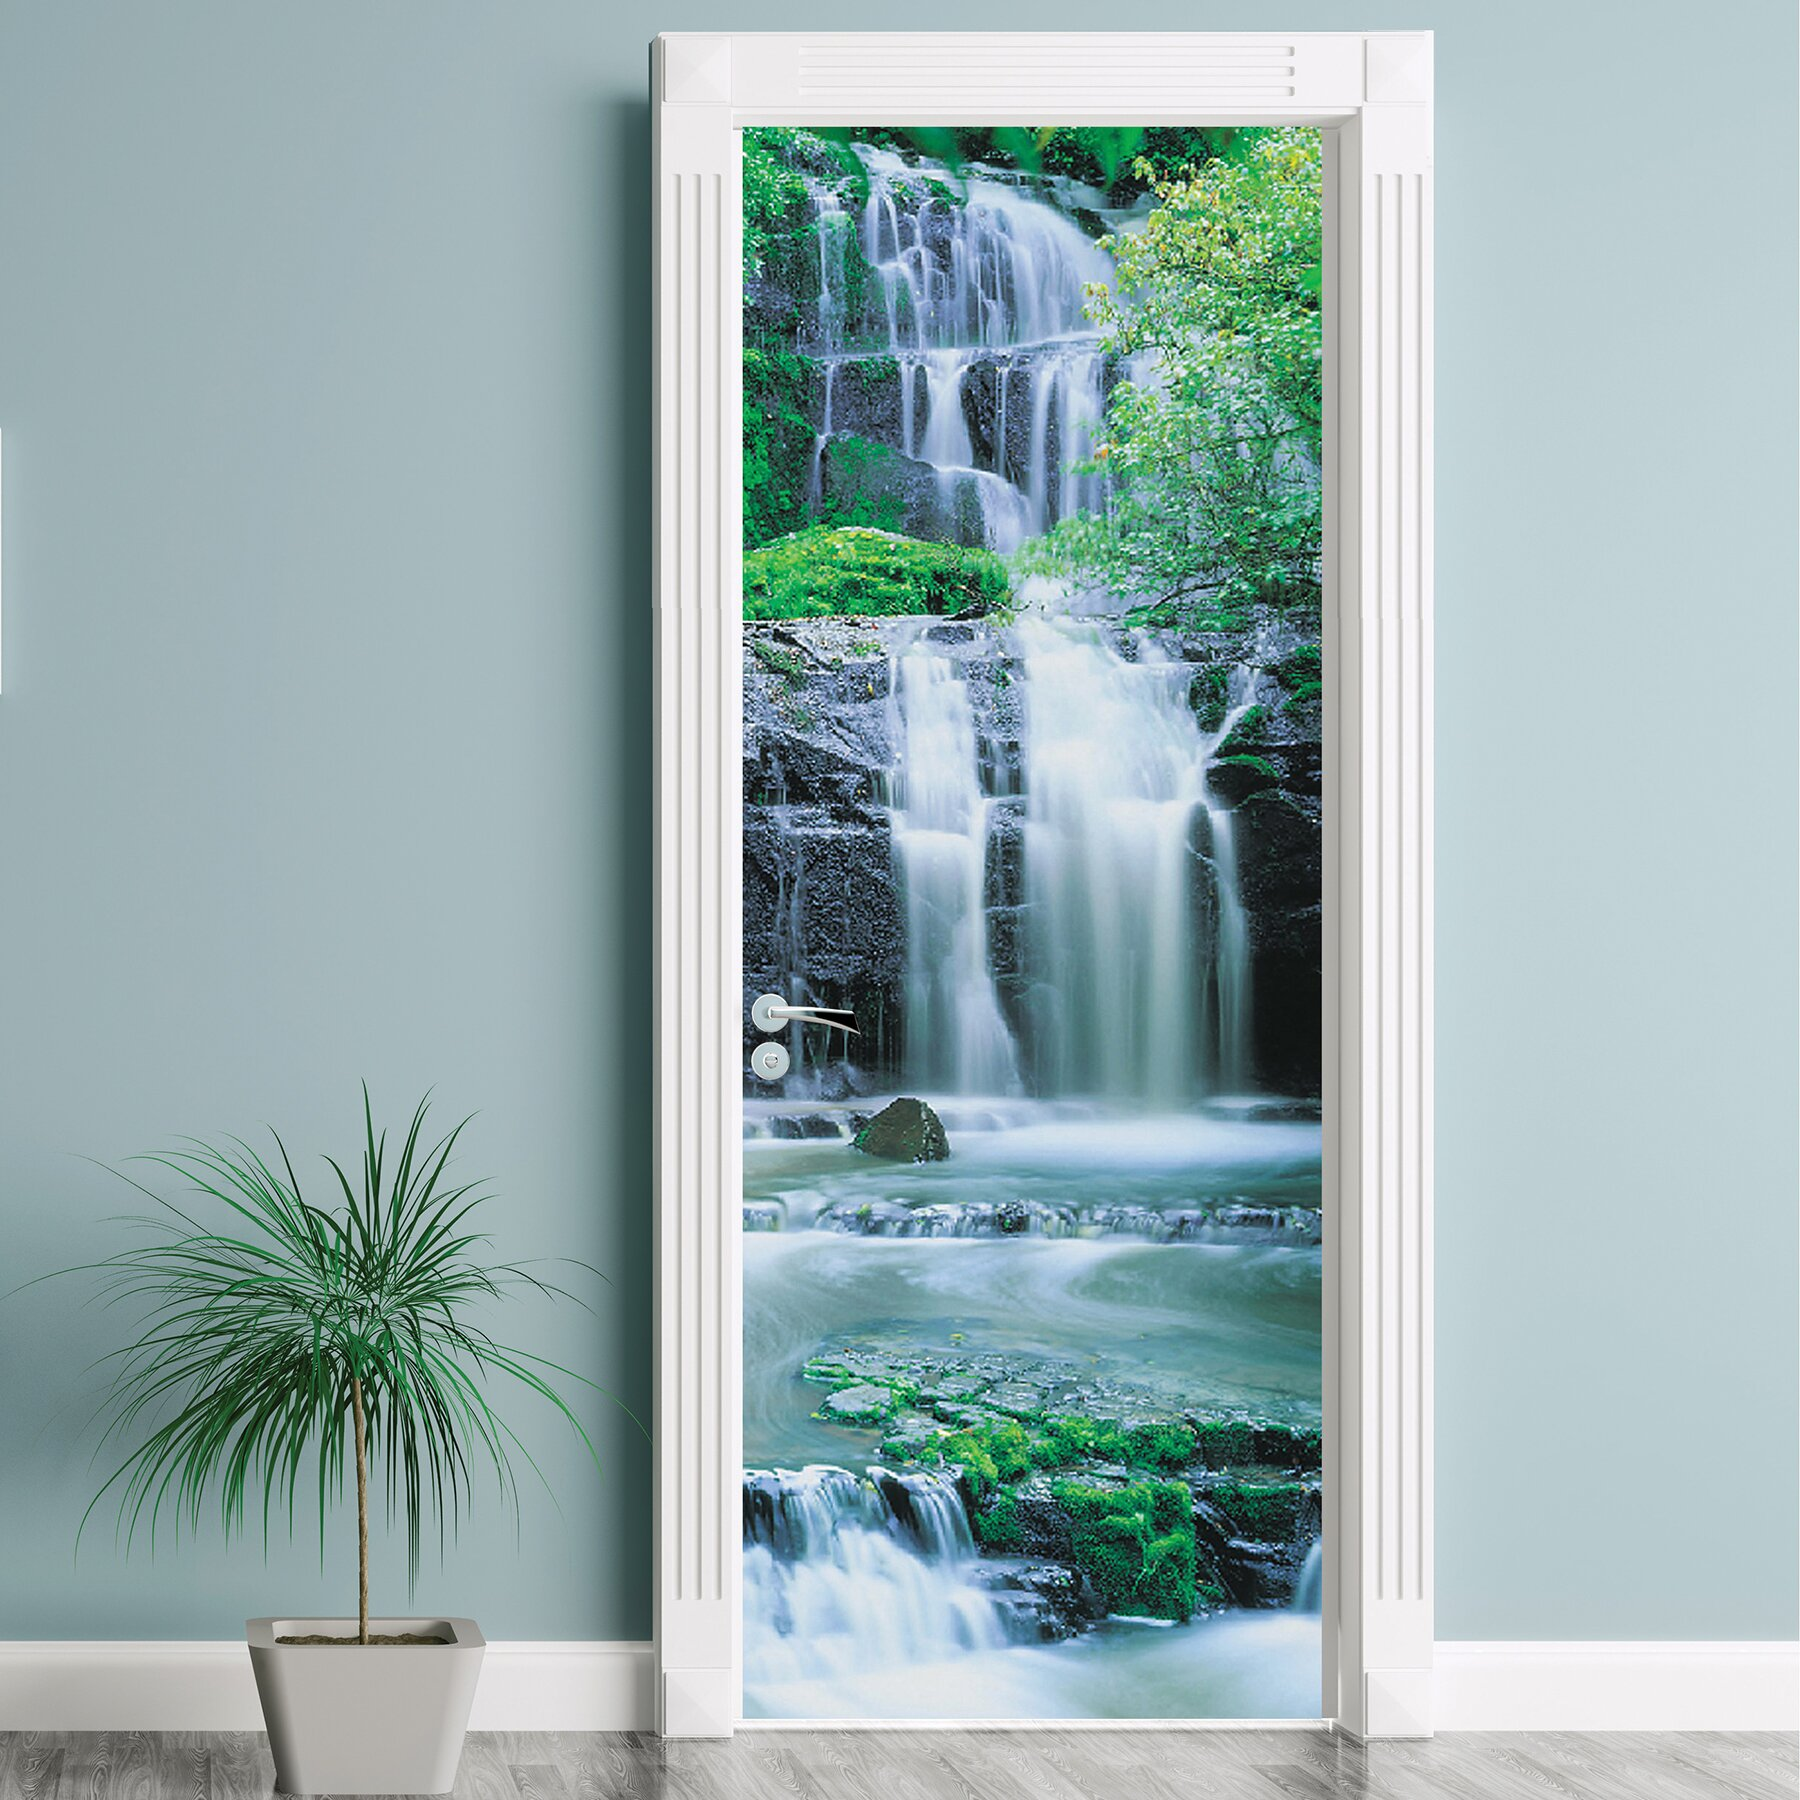 Komar pura kaunui falls wall mural wayfair for Brewster home fashions komar wall mural